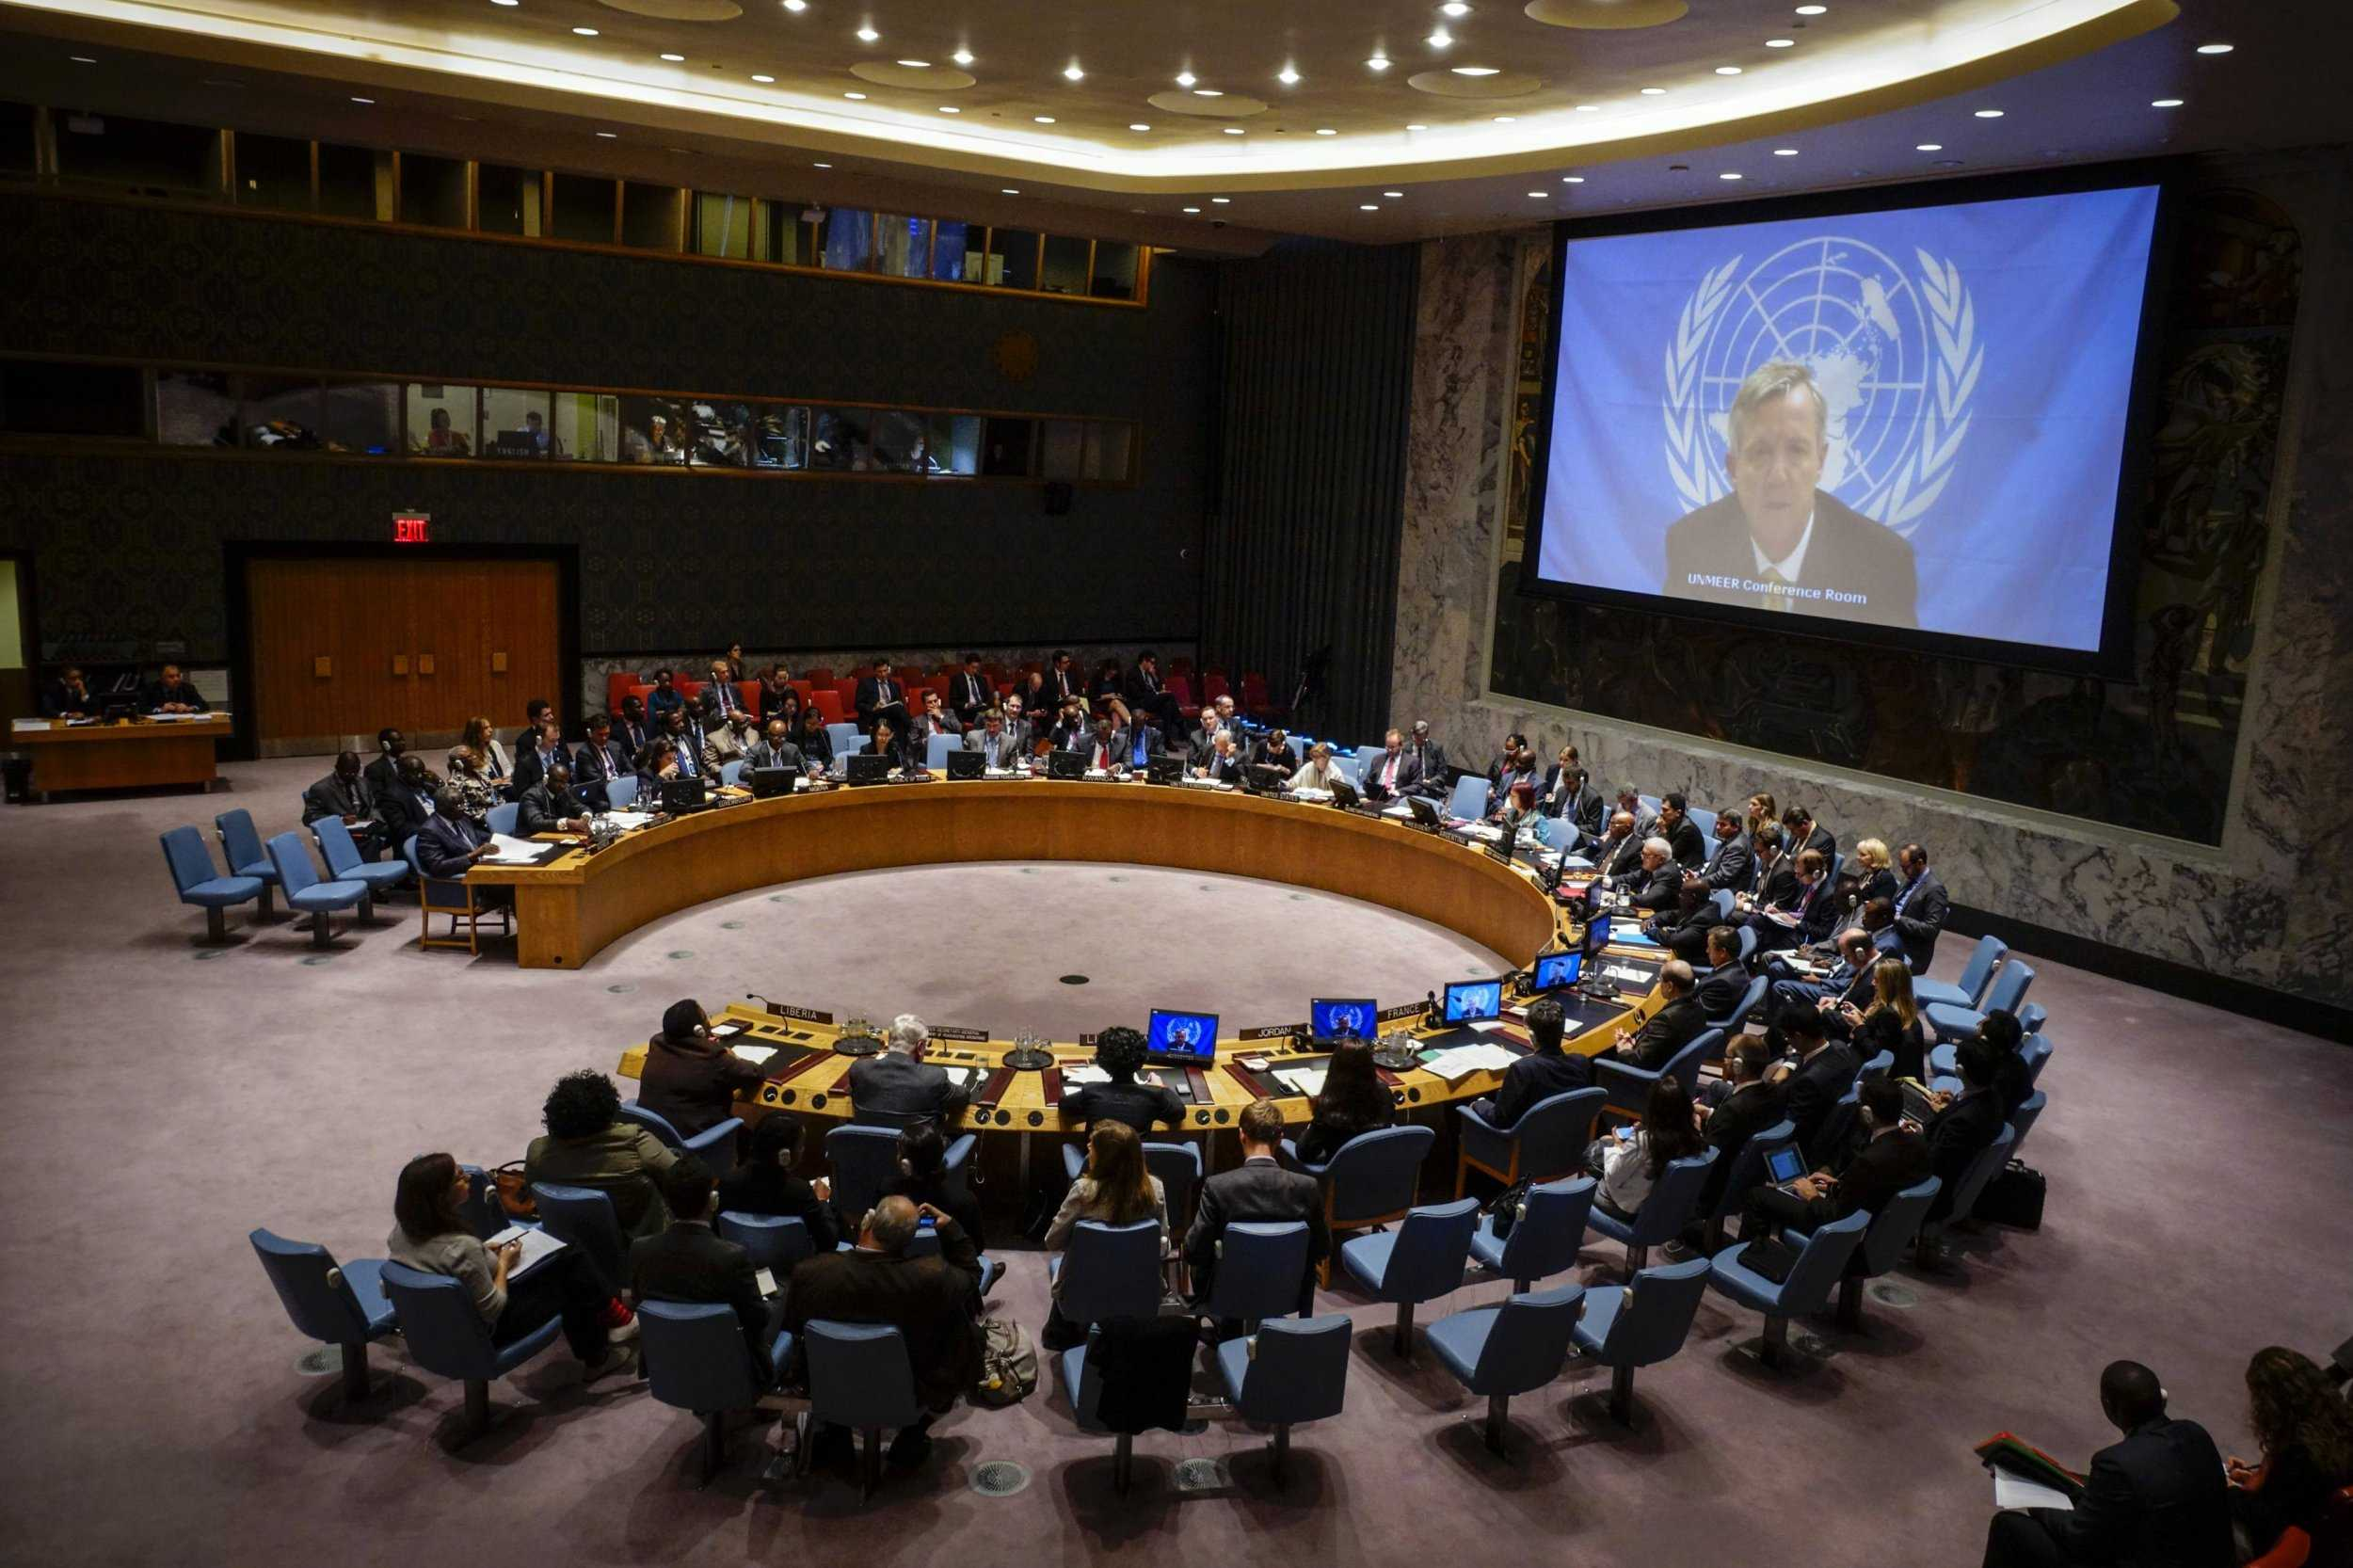 U.N. Ebola mission chief Anthony Banbury speaks to members of the United Nations Security Council. EDUARDO MUNOZ/REUTERS